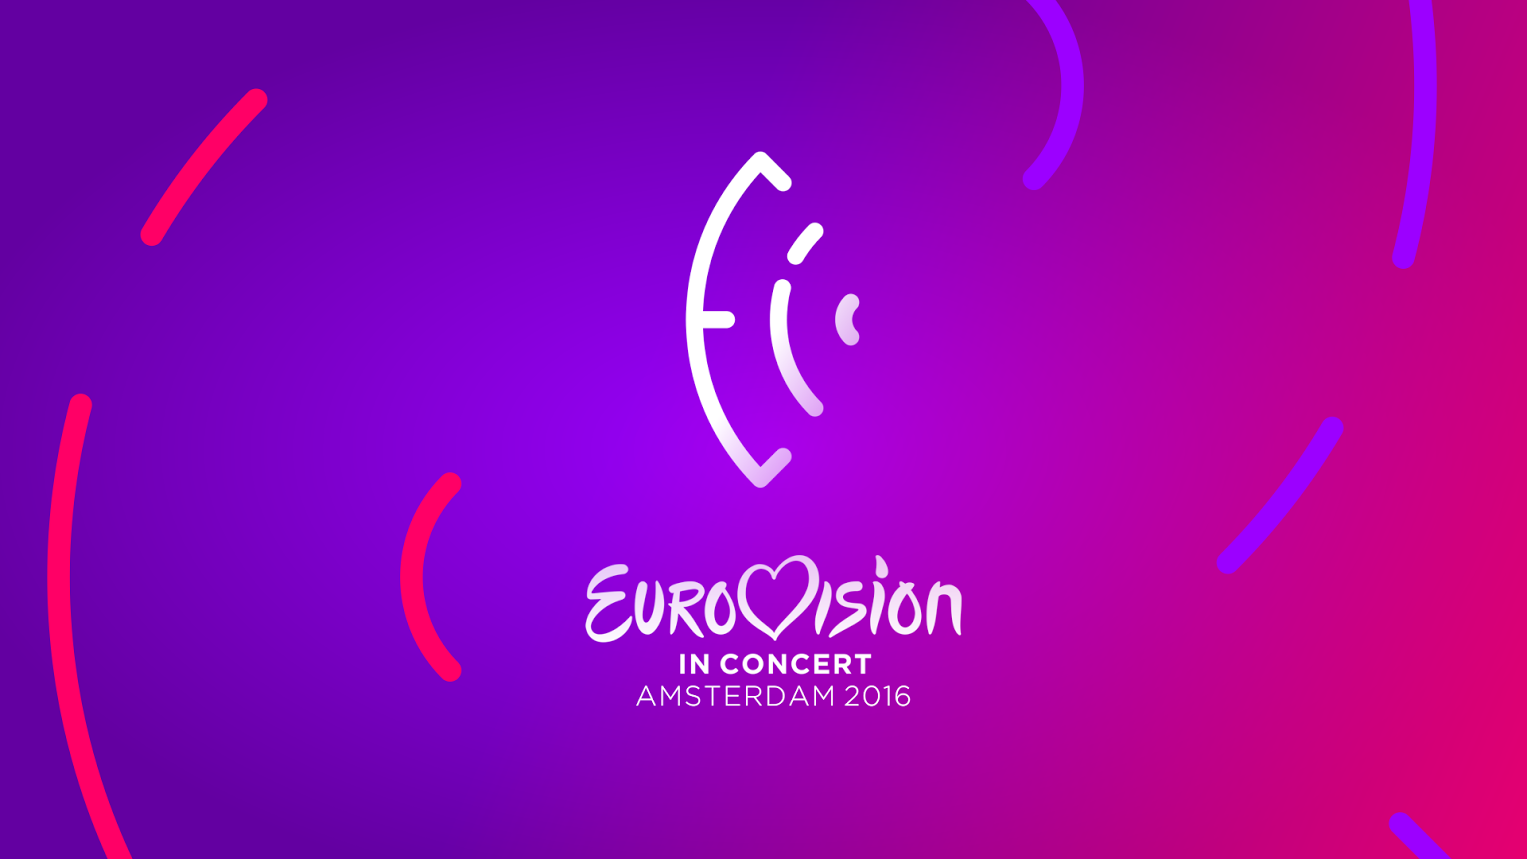 eurovision in concert 2016 date set for april 9 melkweg. Black Bedroom Furniture Sets. Home Design Ideas